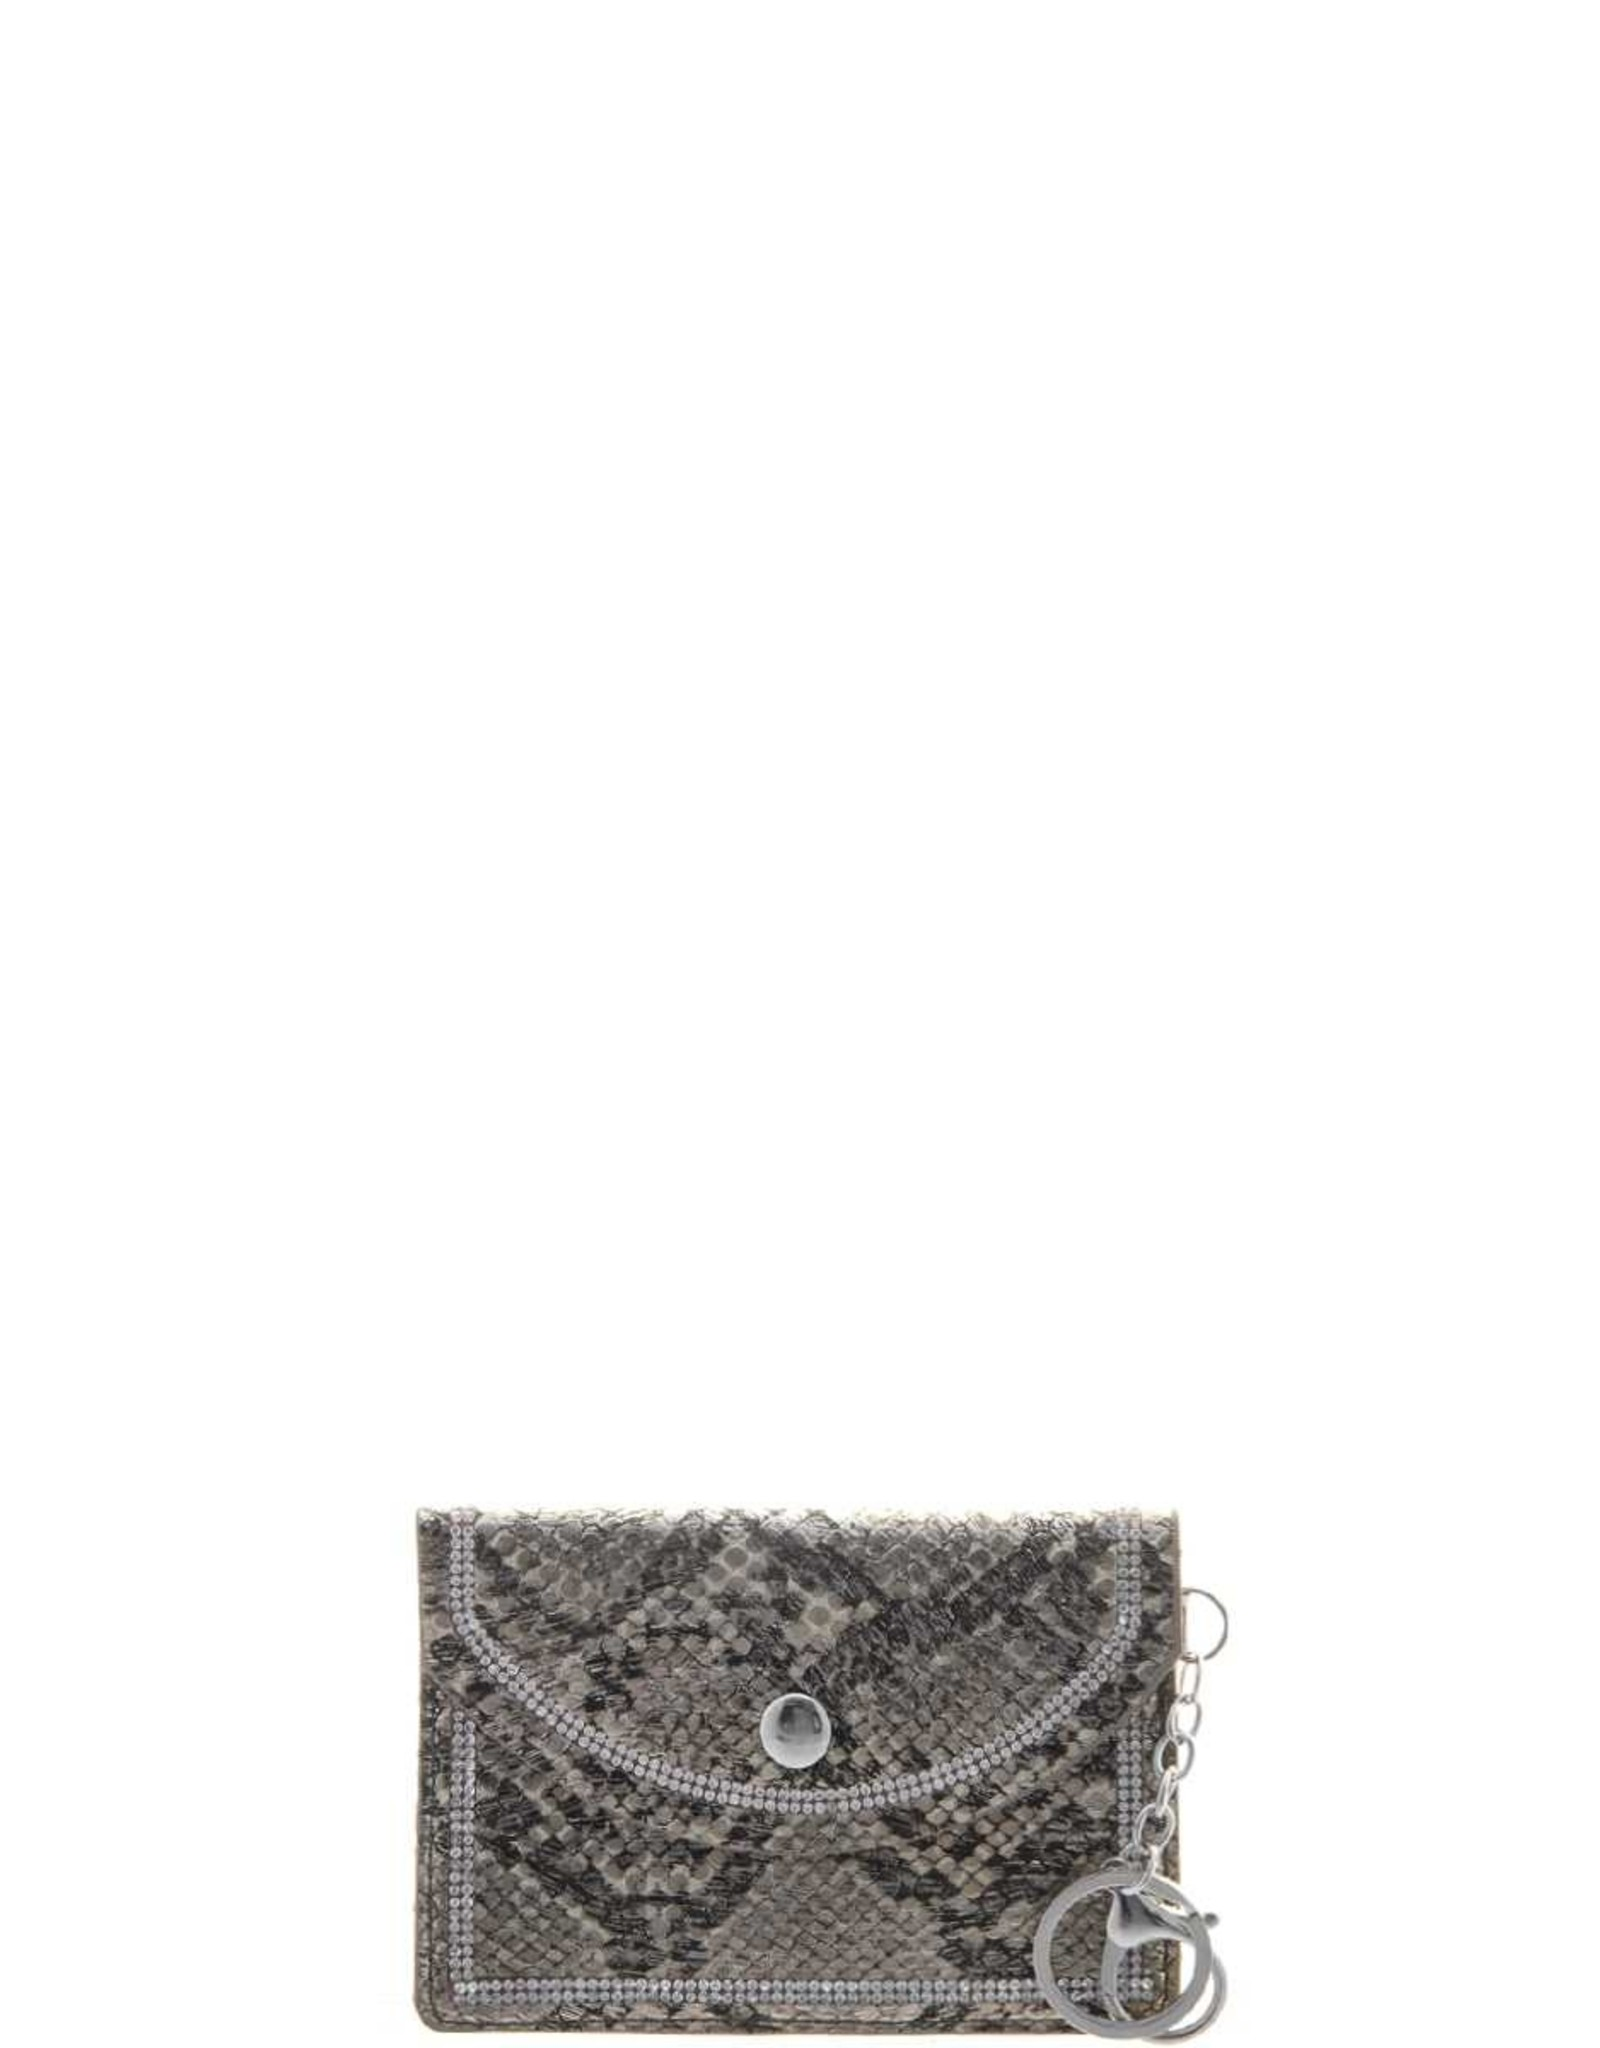 Snake Skin Studded Rhinestone Border Mni Clutch Key Chain